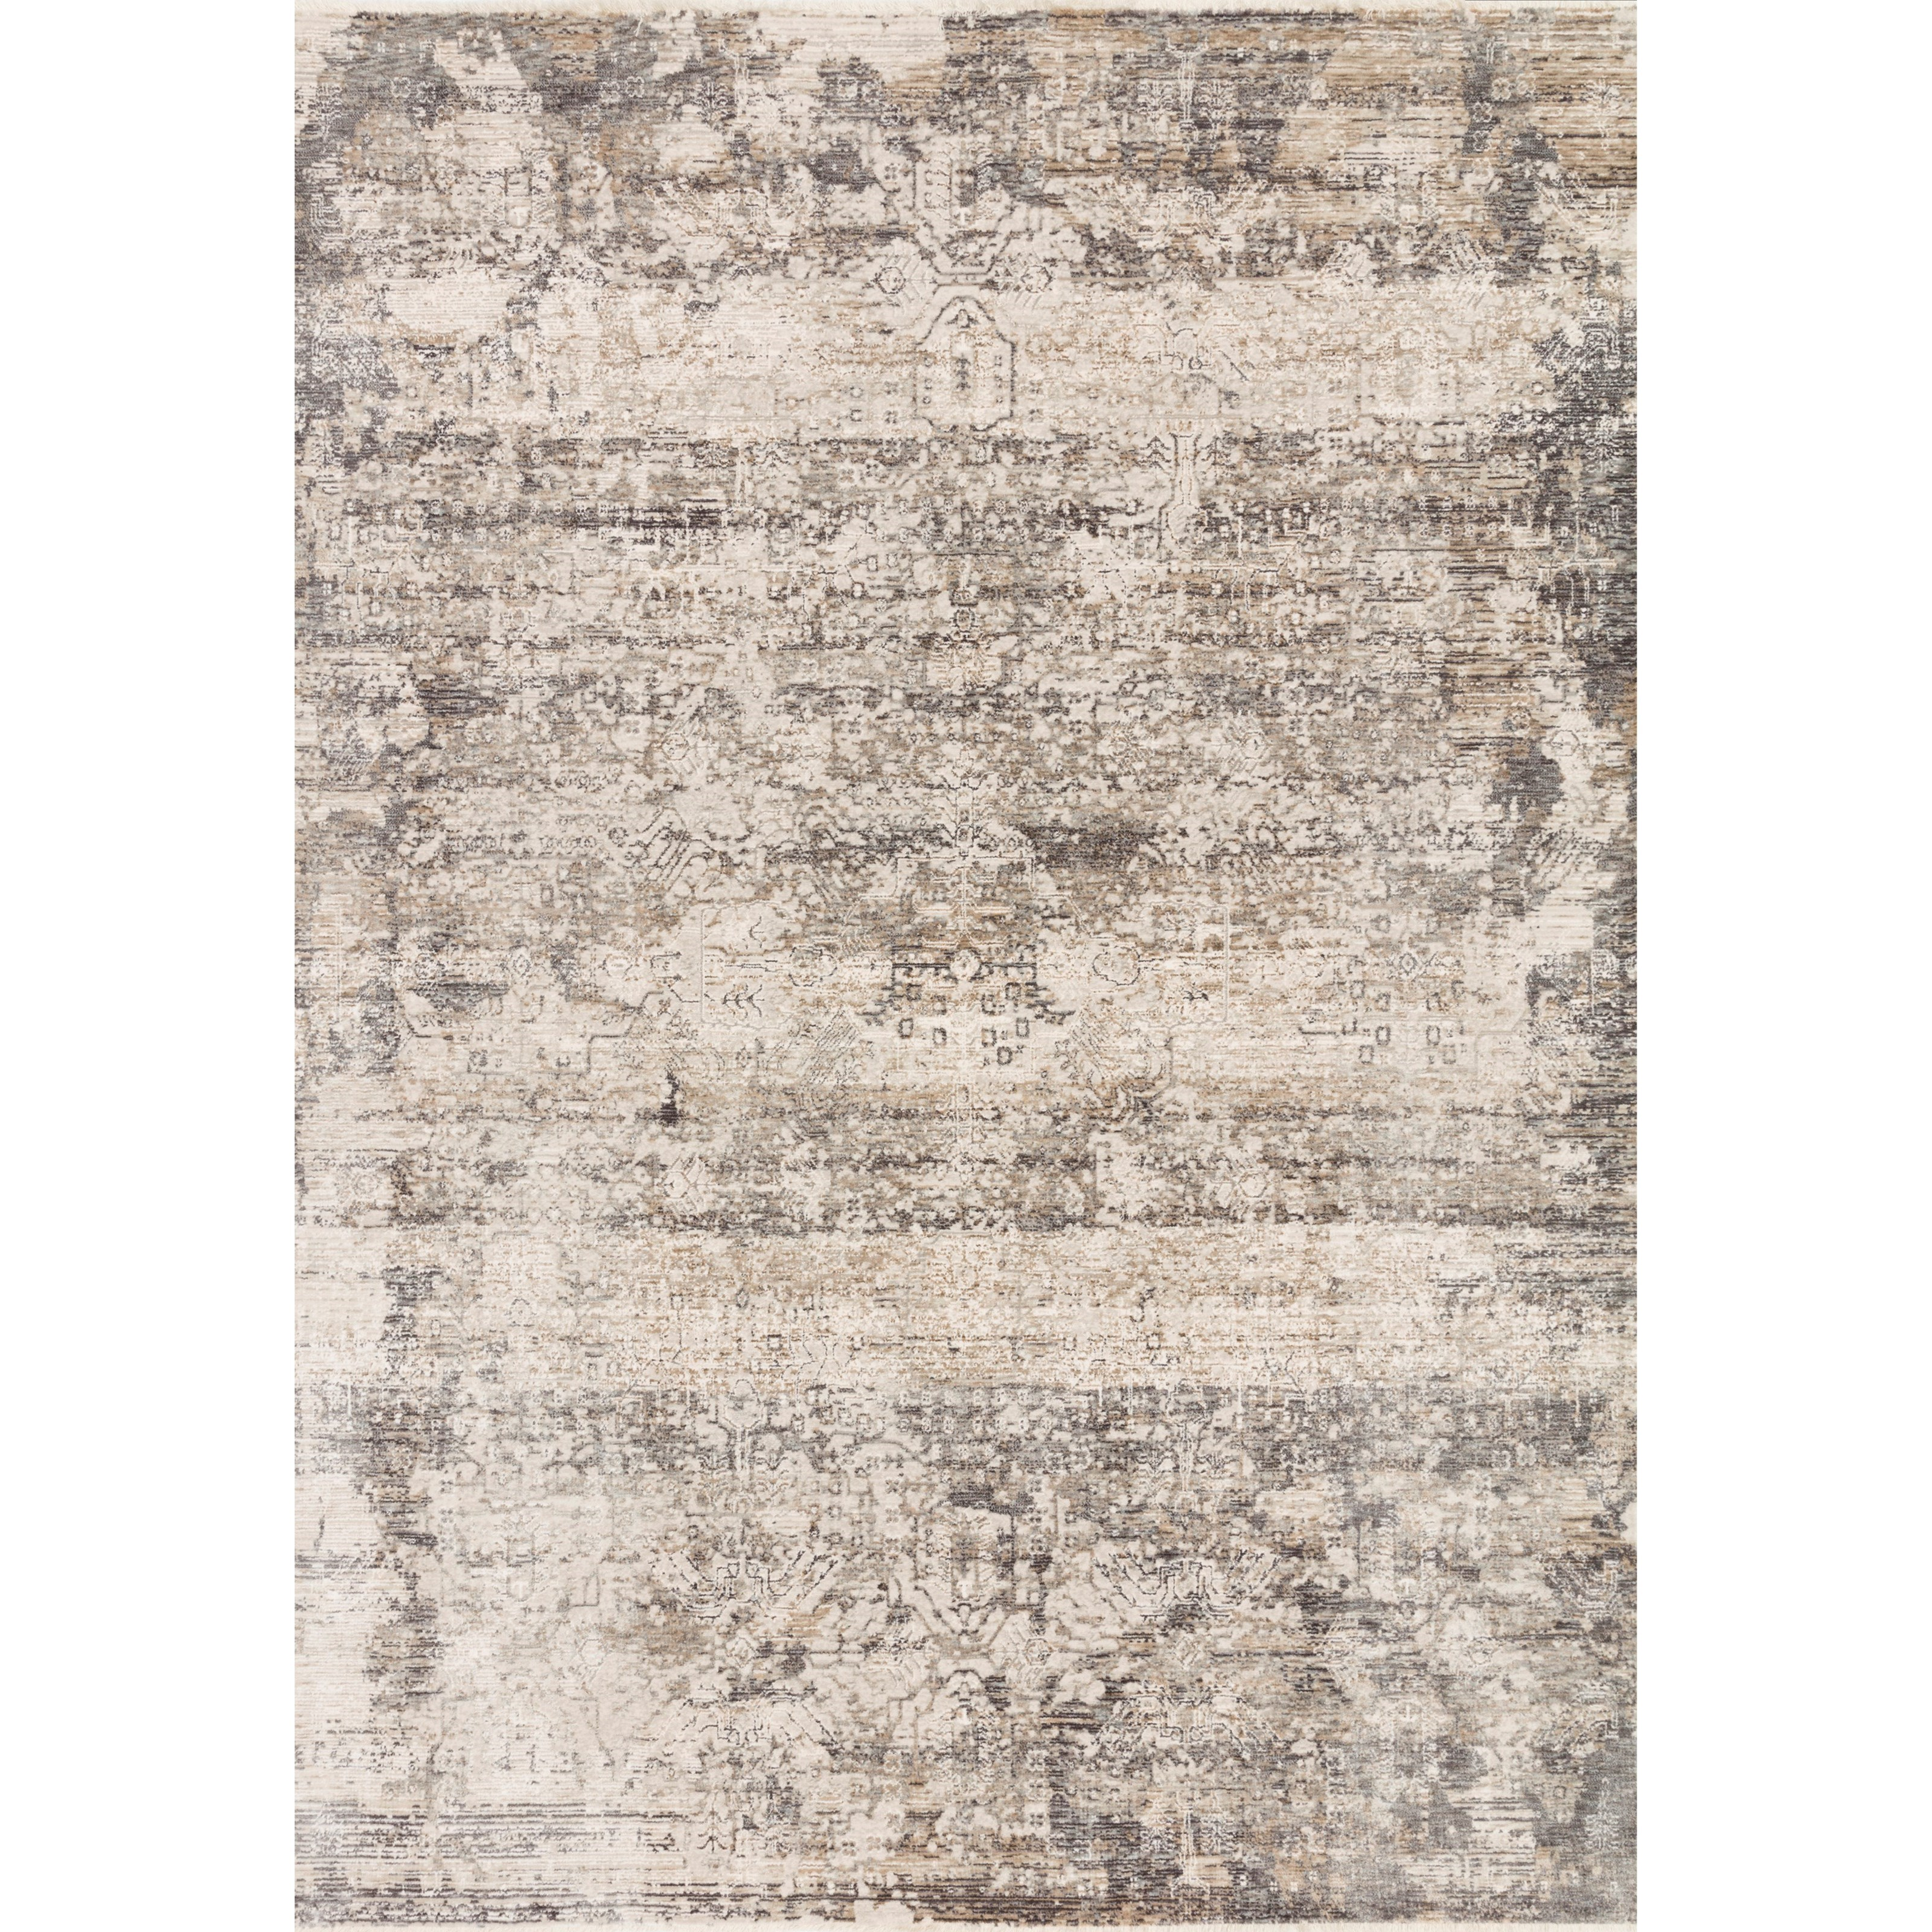 """Homage 9'6"""" x 12'5"""" Graphite / Beige Rug by Loloi Rugs at Virginia Furniture Market"""